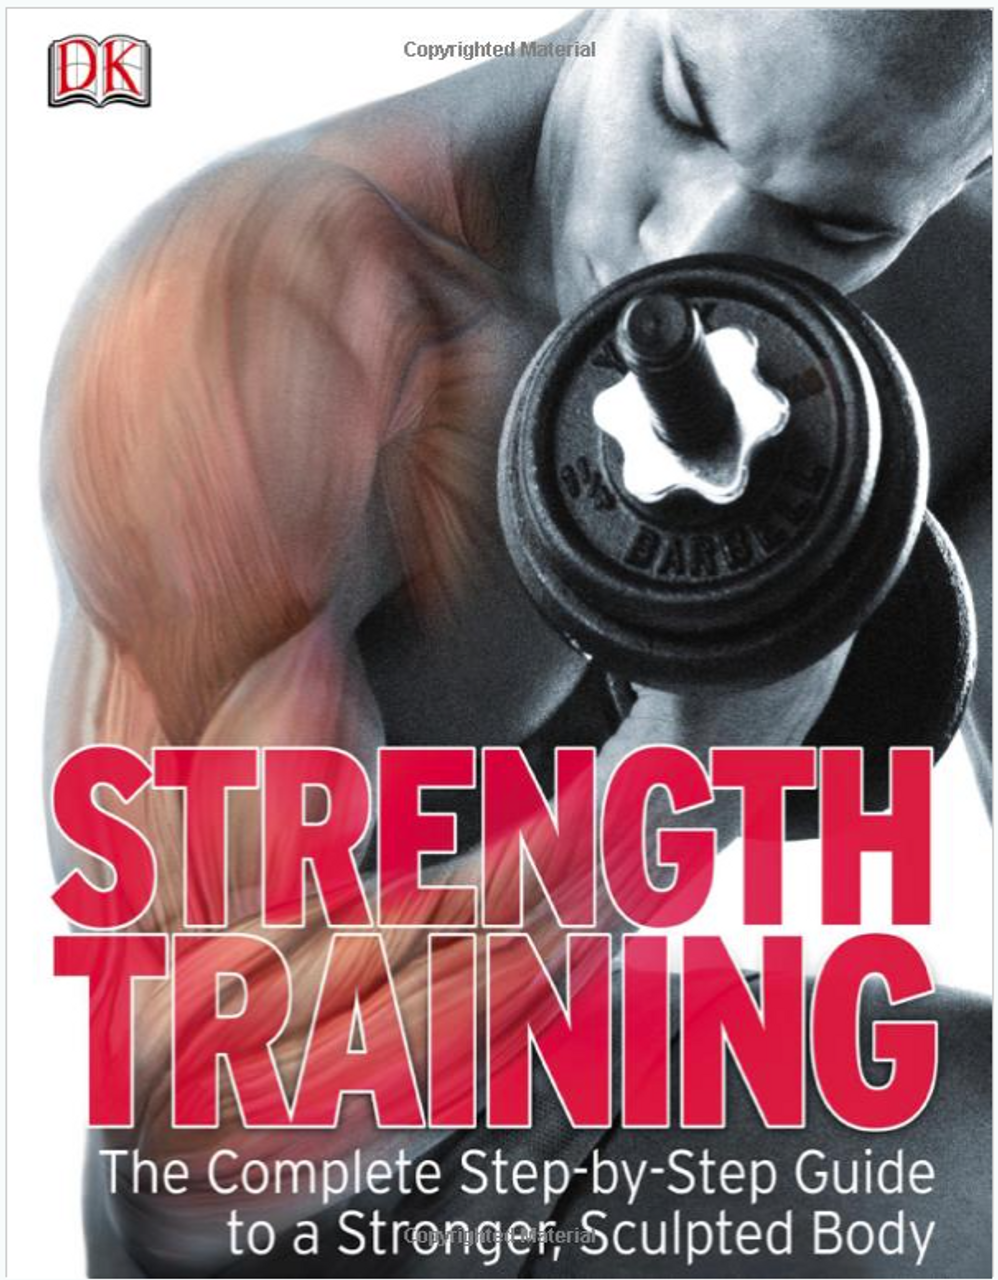 Strength Training: The Complete Step-by-Step Guide to a Stronger, Sculpted Body 4046PB